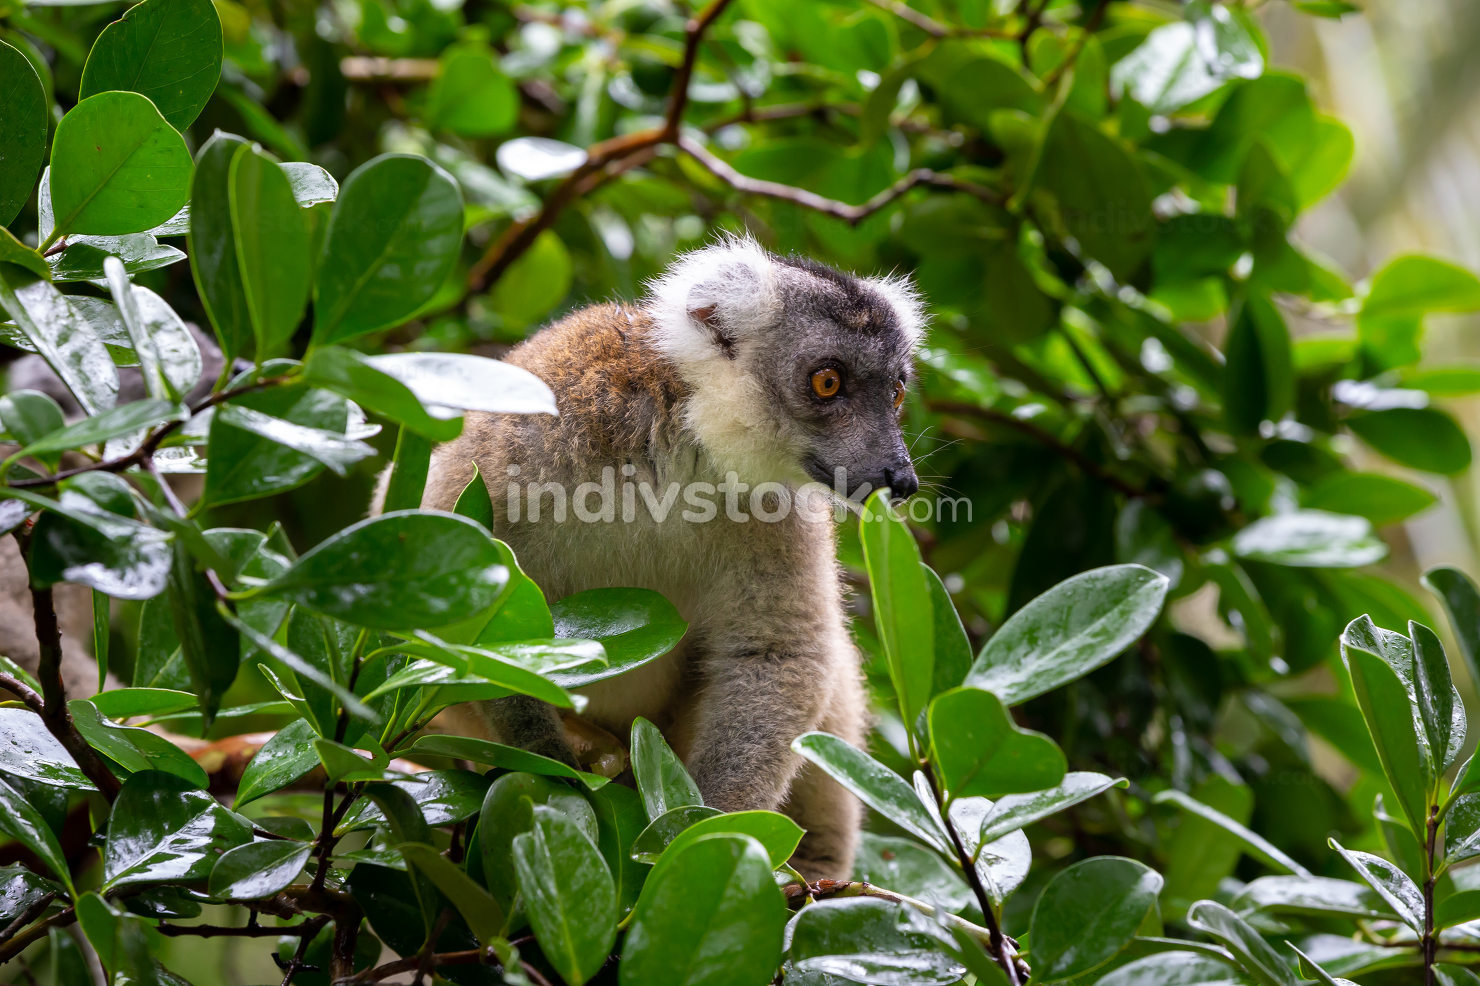 A lemur on a tree, between the foliage in a rainforest in Madaga